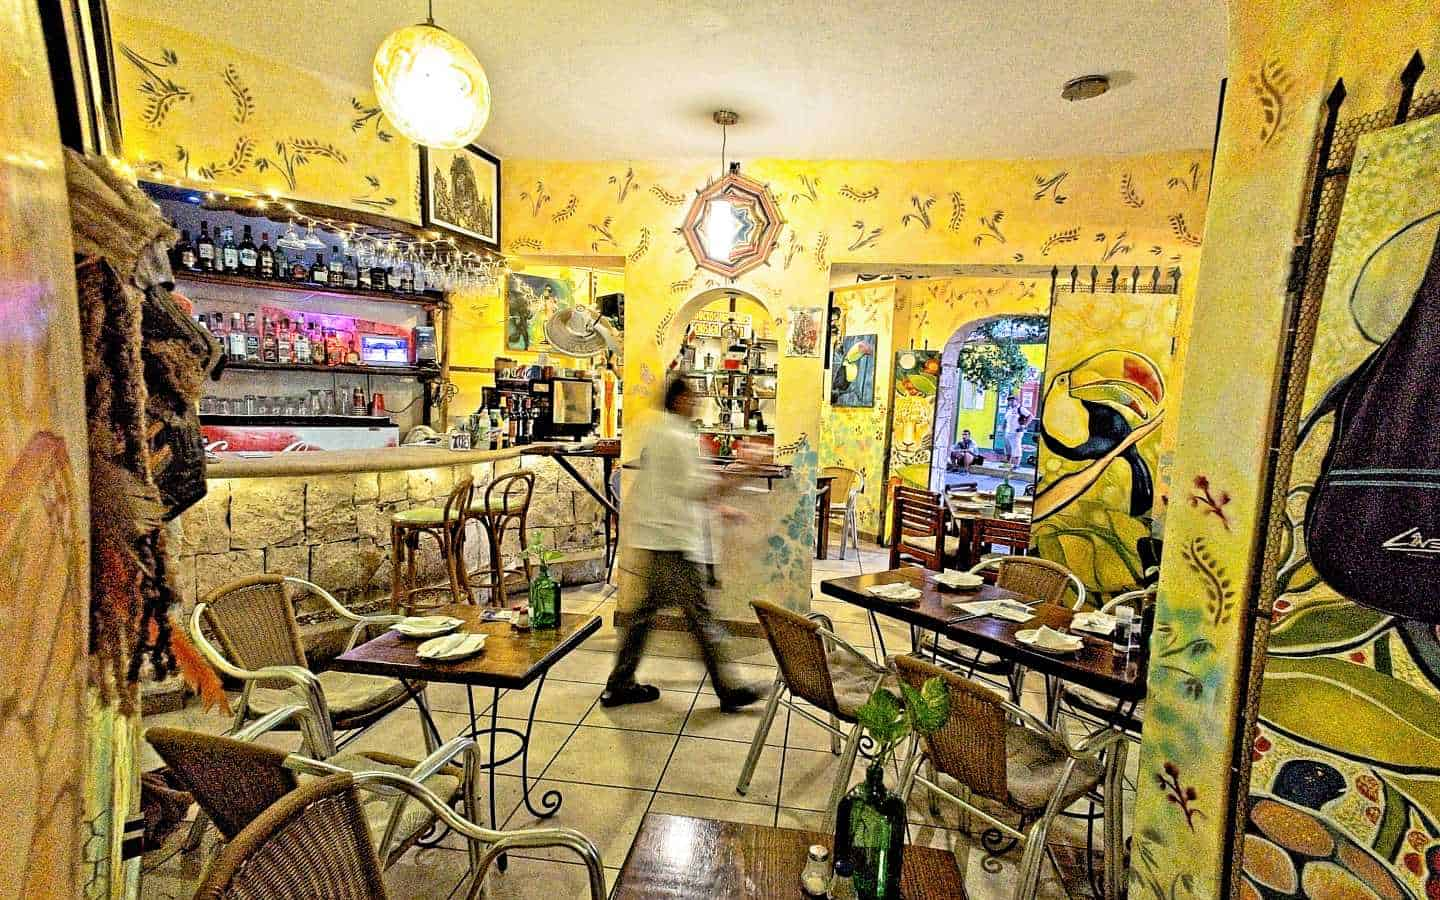 Casa Tucan restaurant with complete commercial kitchen